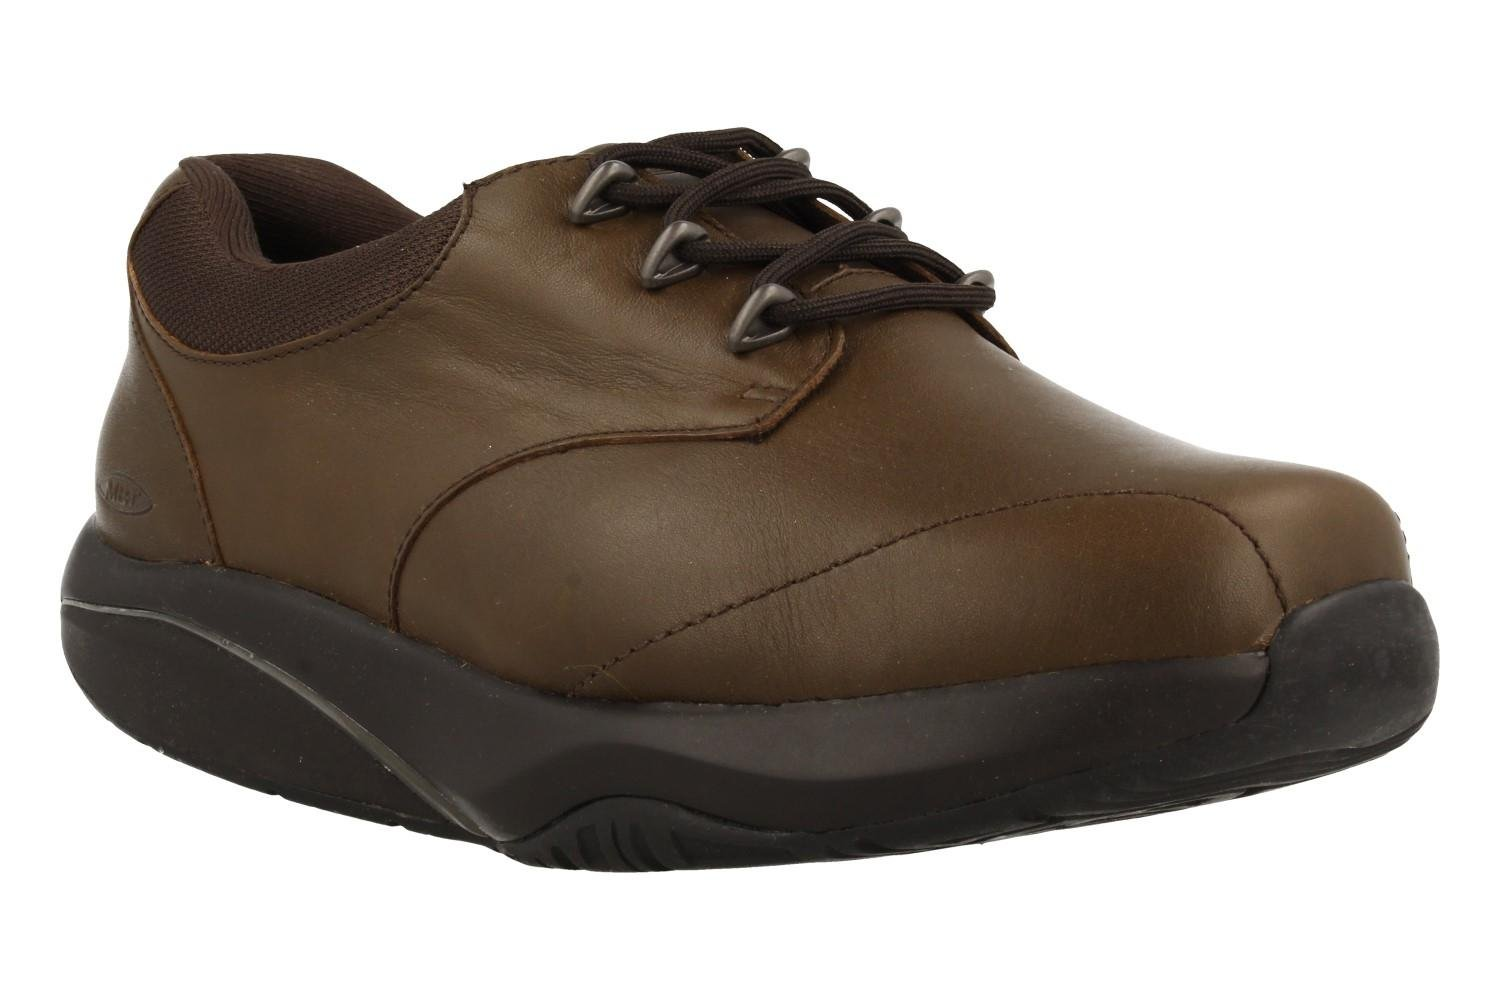 MBT Women's Kampala Casual Shoe,Coffee,36 EU/5-5.5 M US